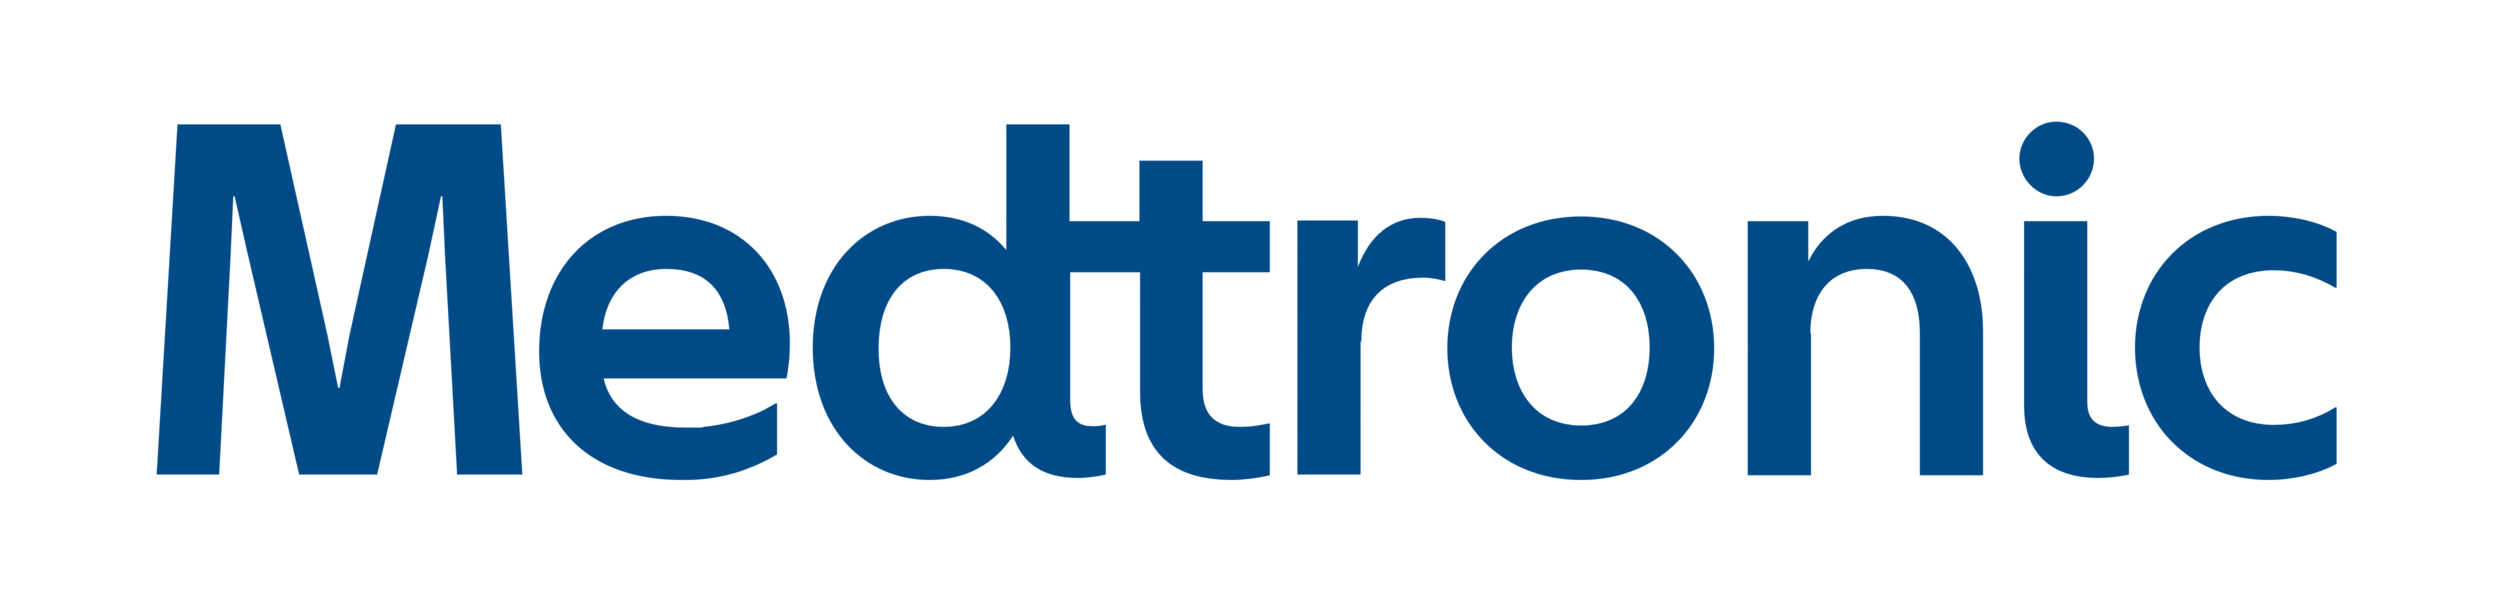 medtronic_logo-1 (no background).png